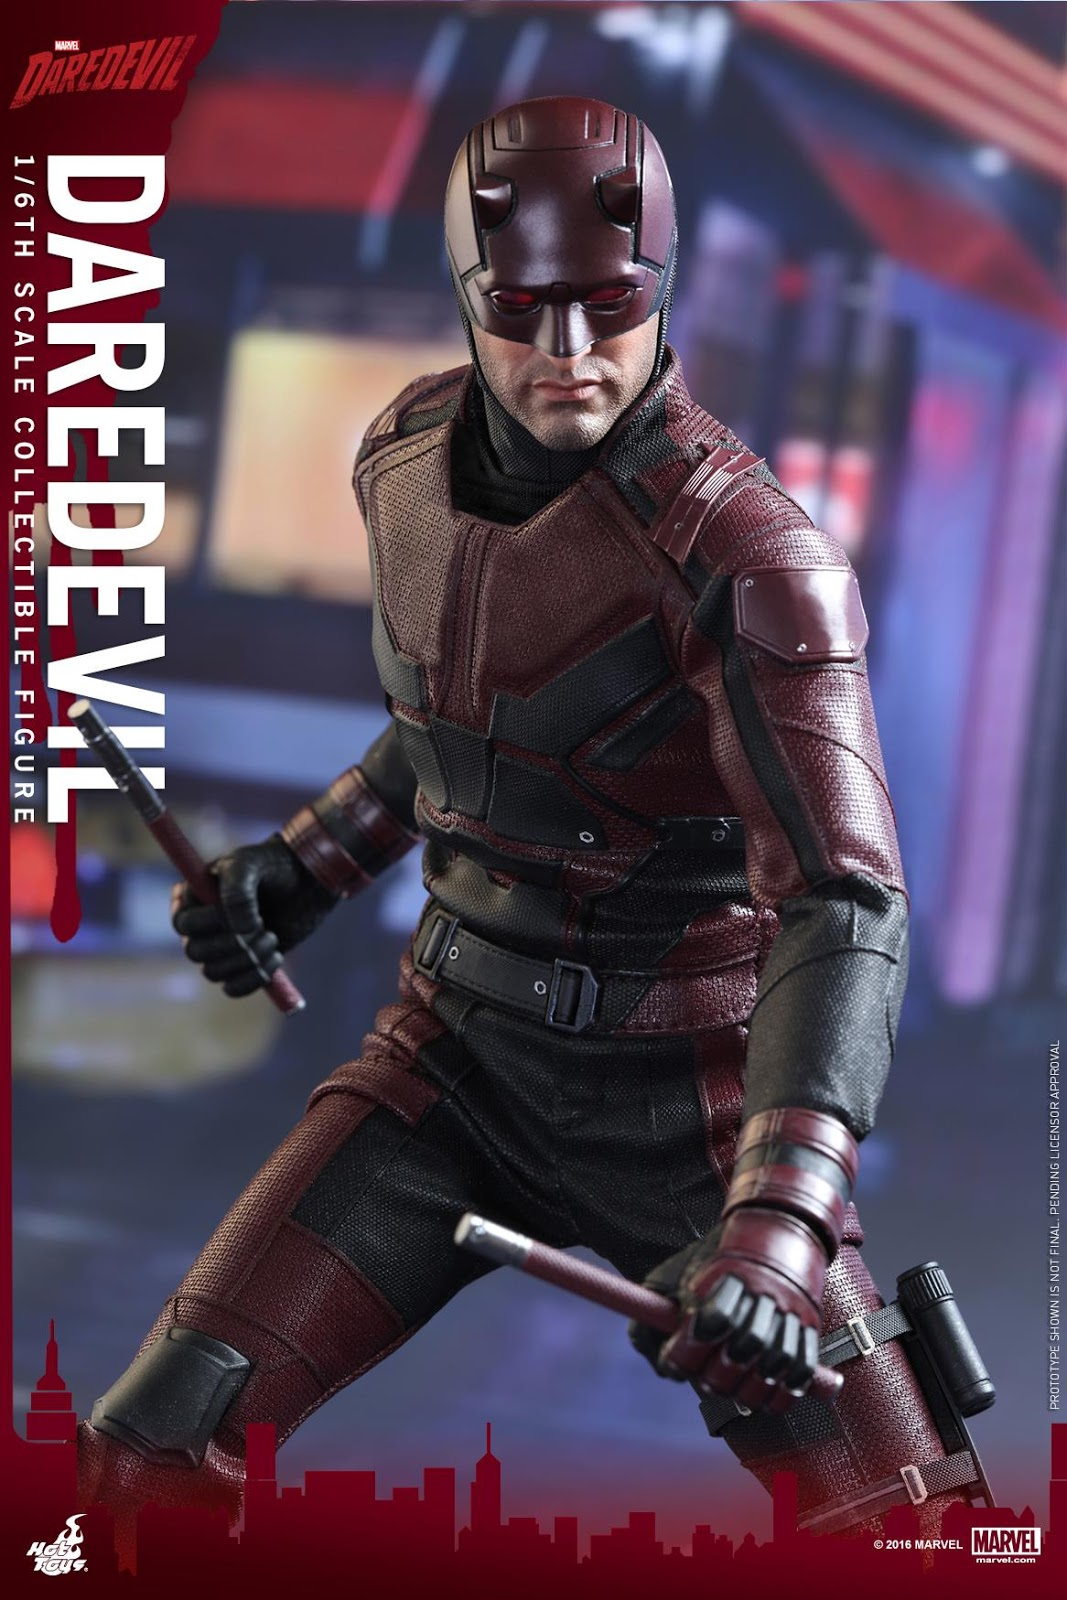 Toyhaven Check Out Hot Toys Marvel Netflix 1 6th Scale